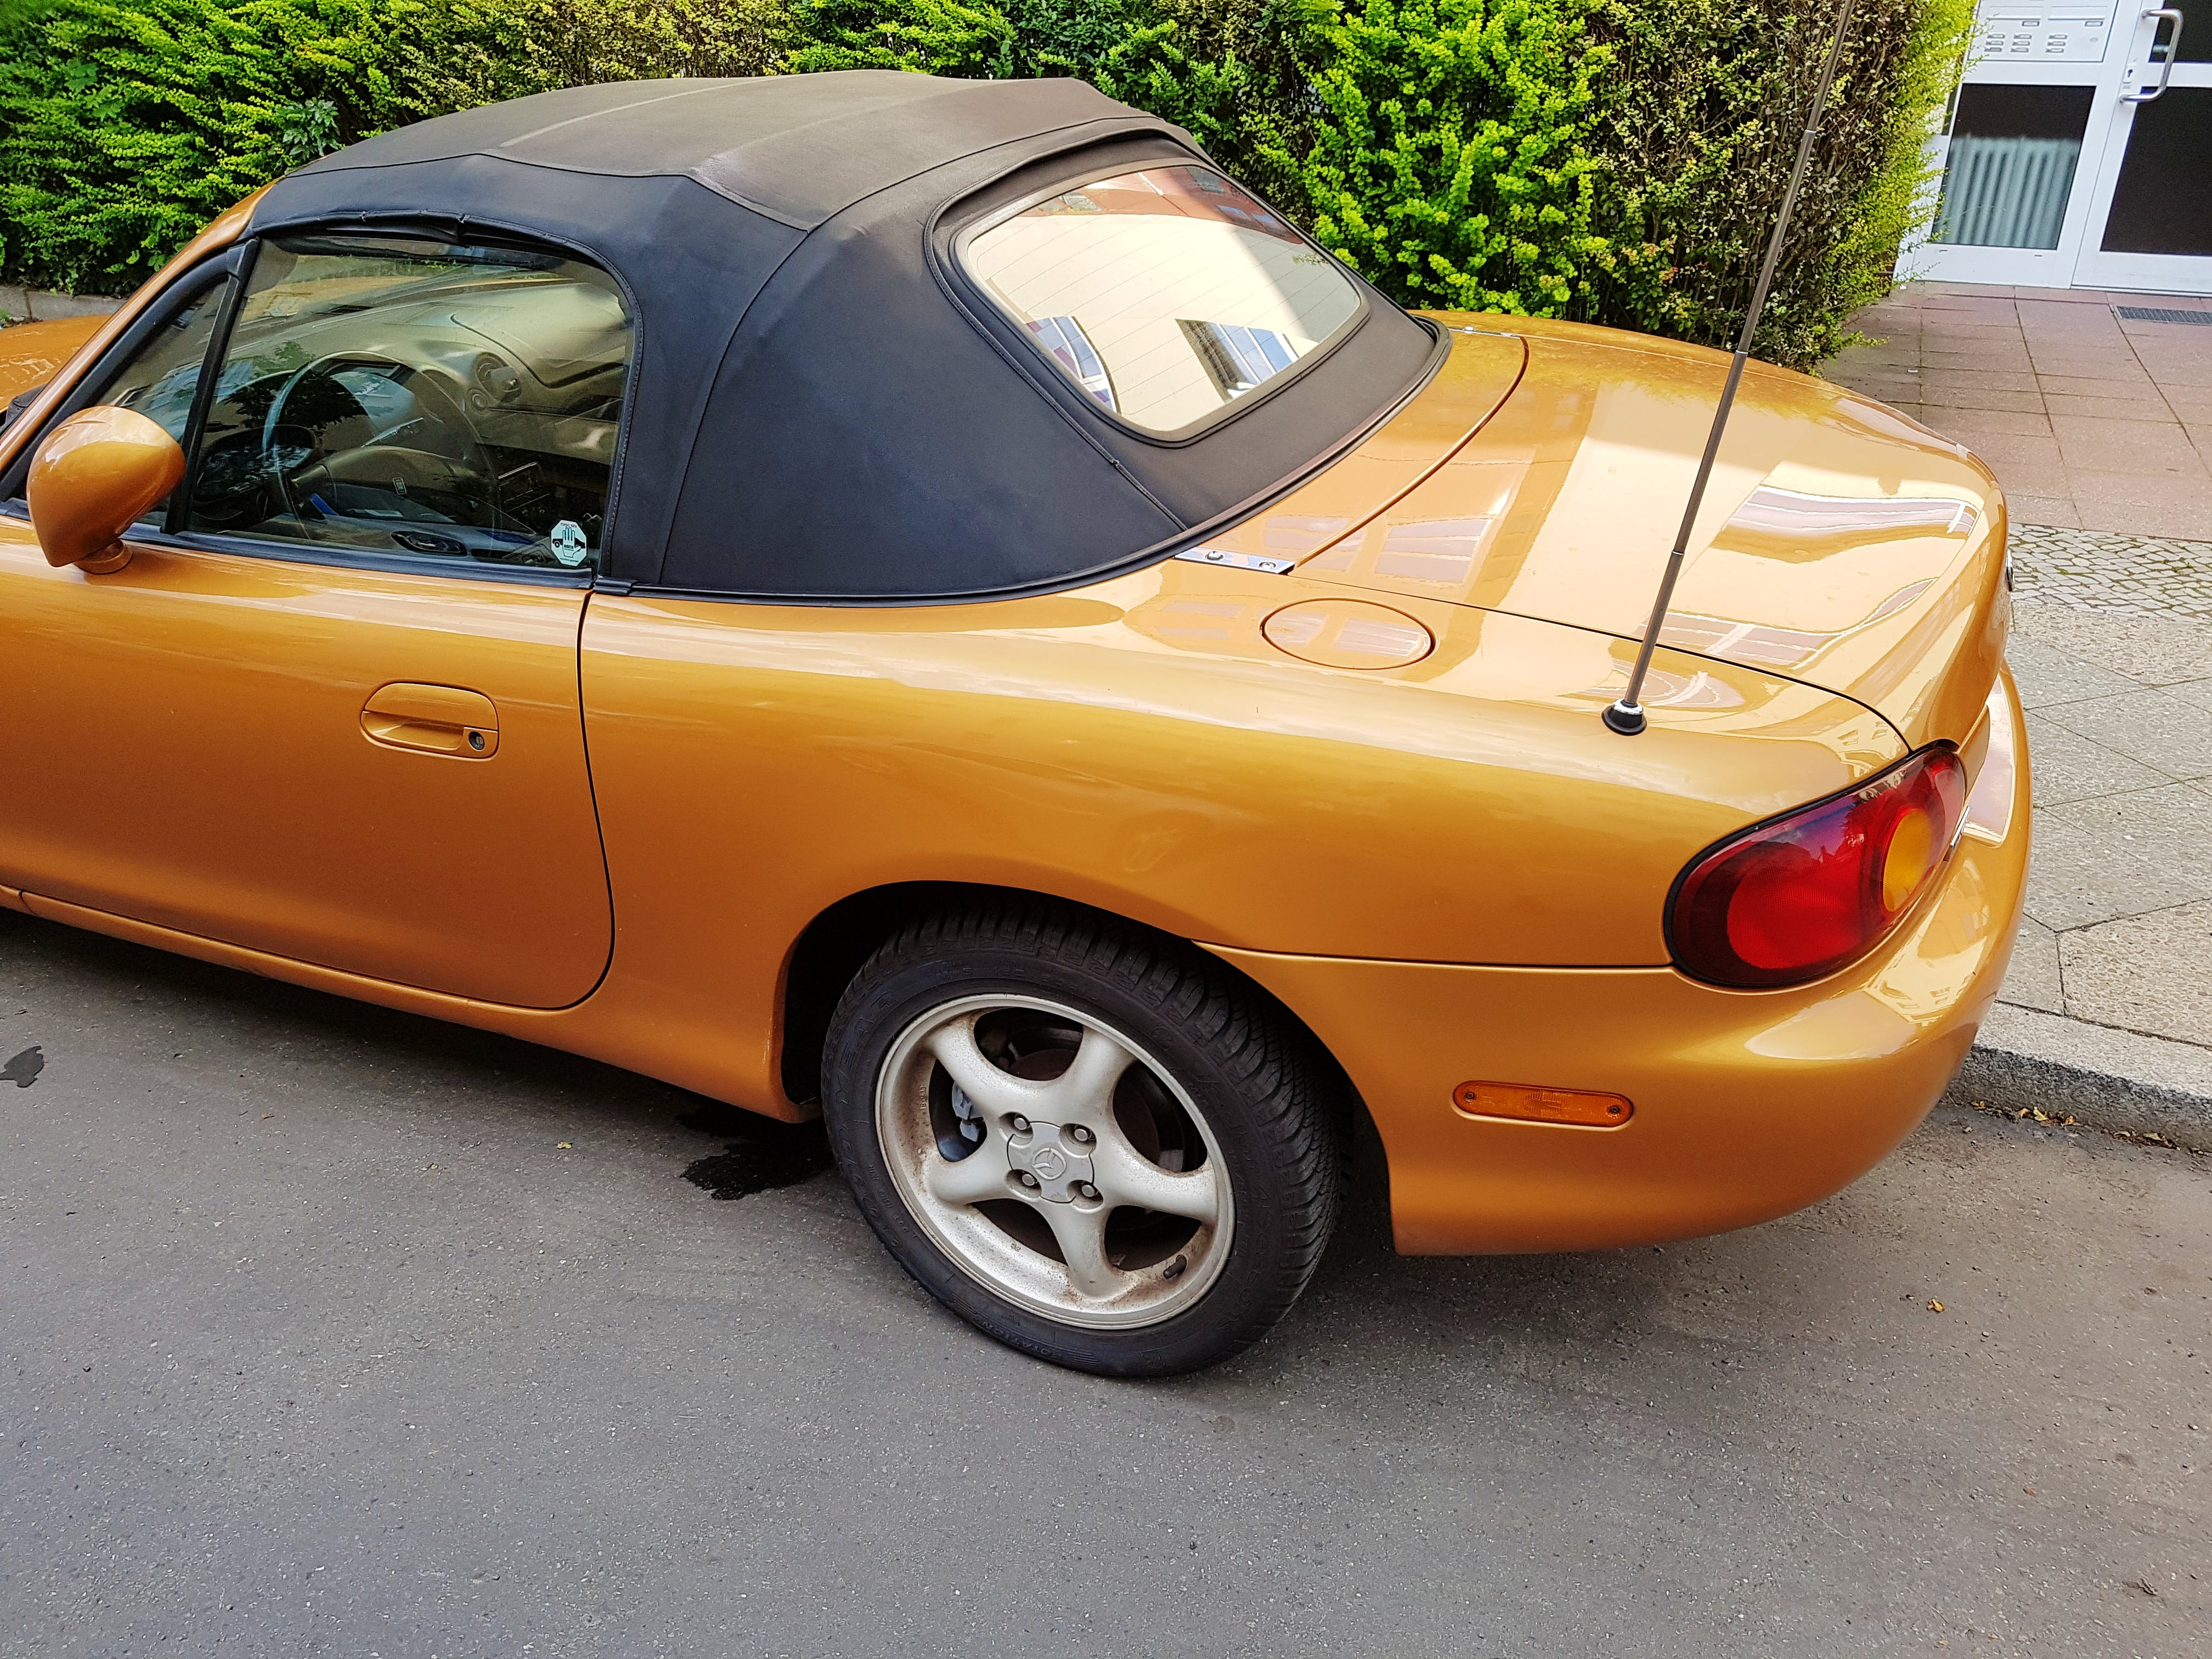 Mazda MX-5 Roadster Gold - Kate